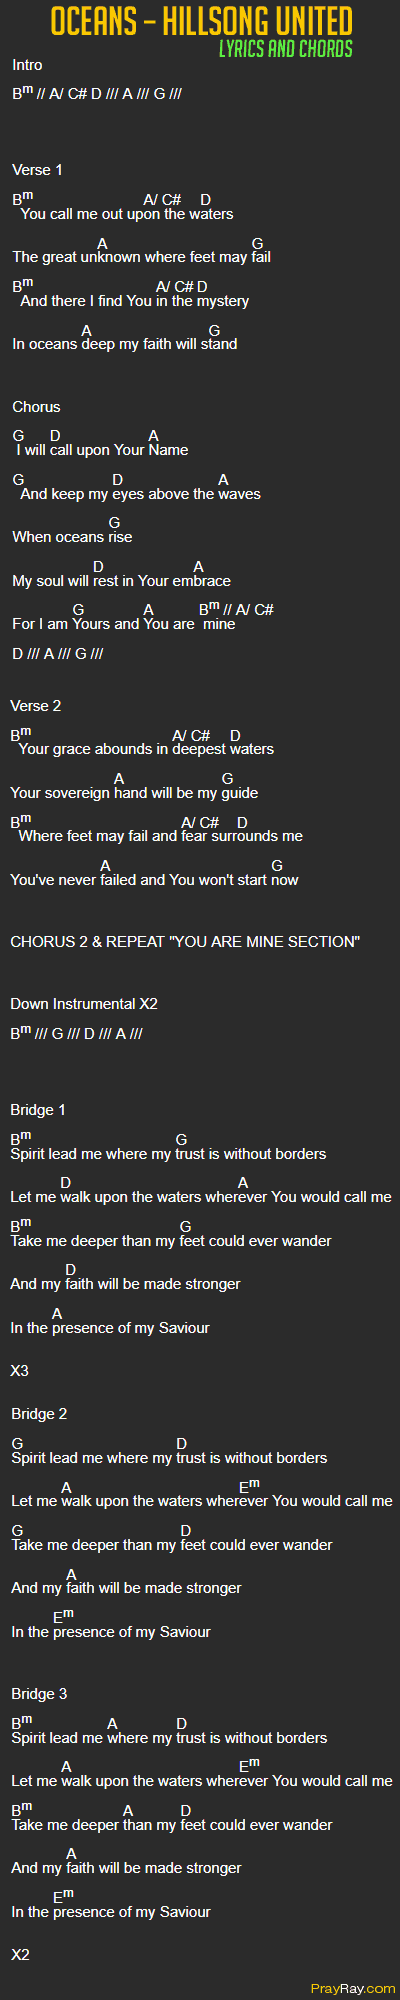 Oceans hillsong united chords lyrics